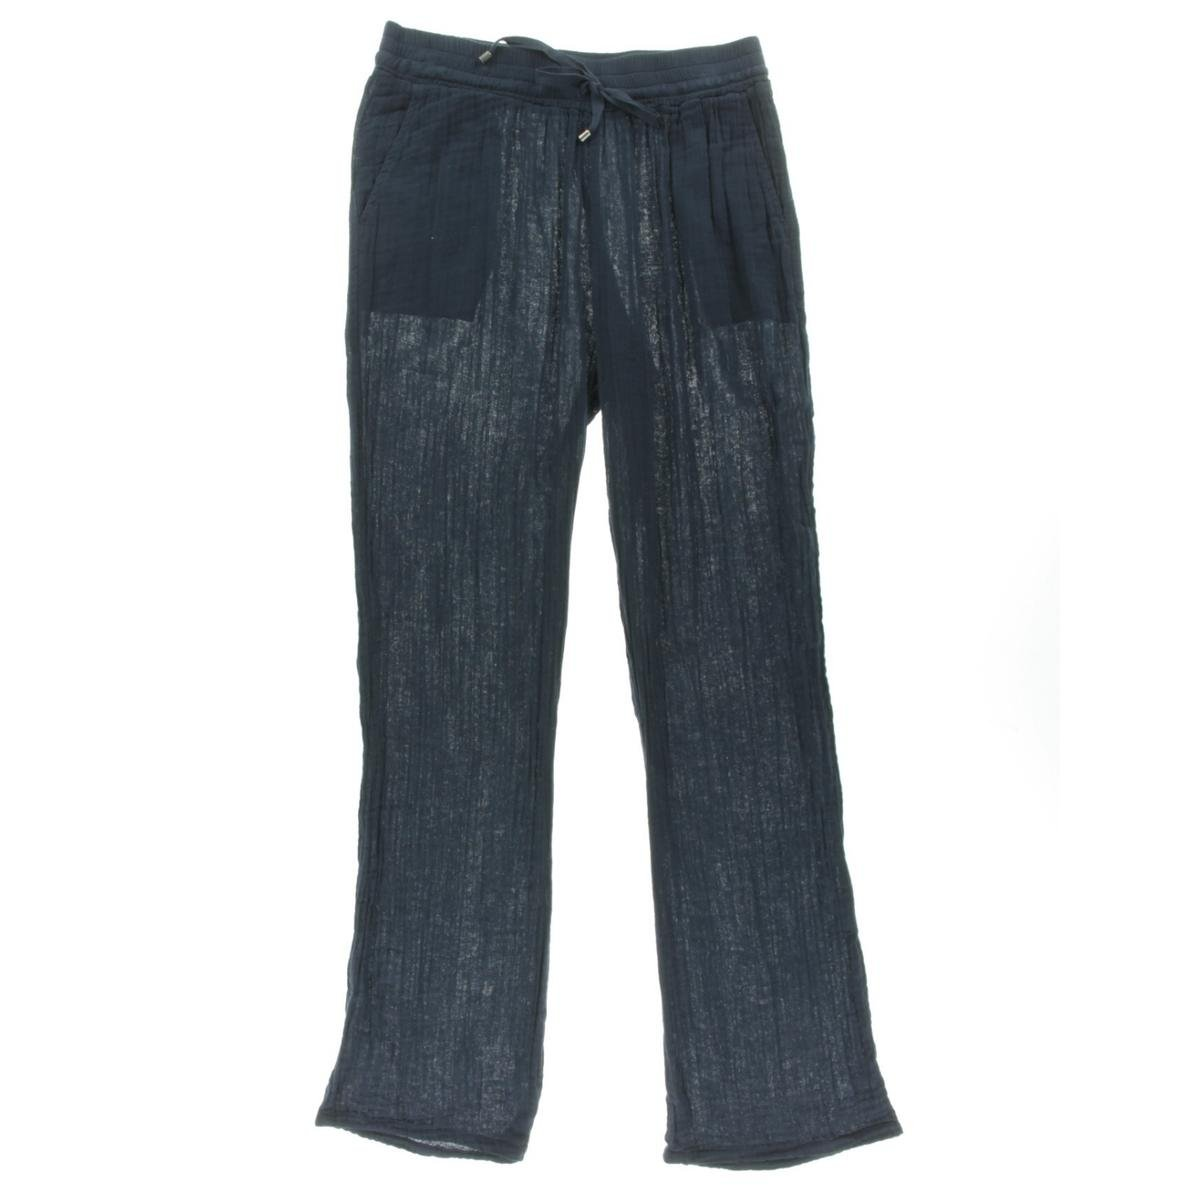 Three Dots Womens Crinkled Bootcut Lounge Pants Navy XS